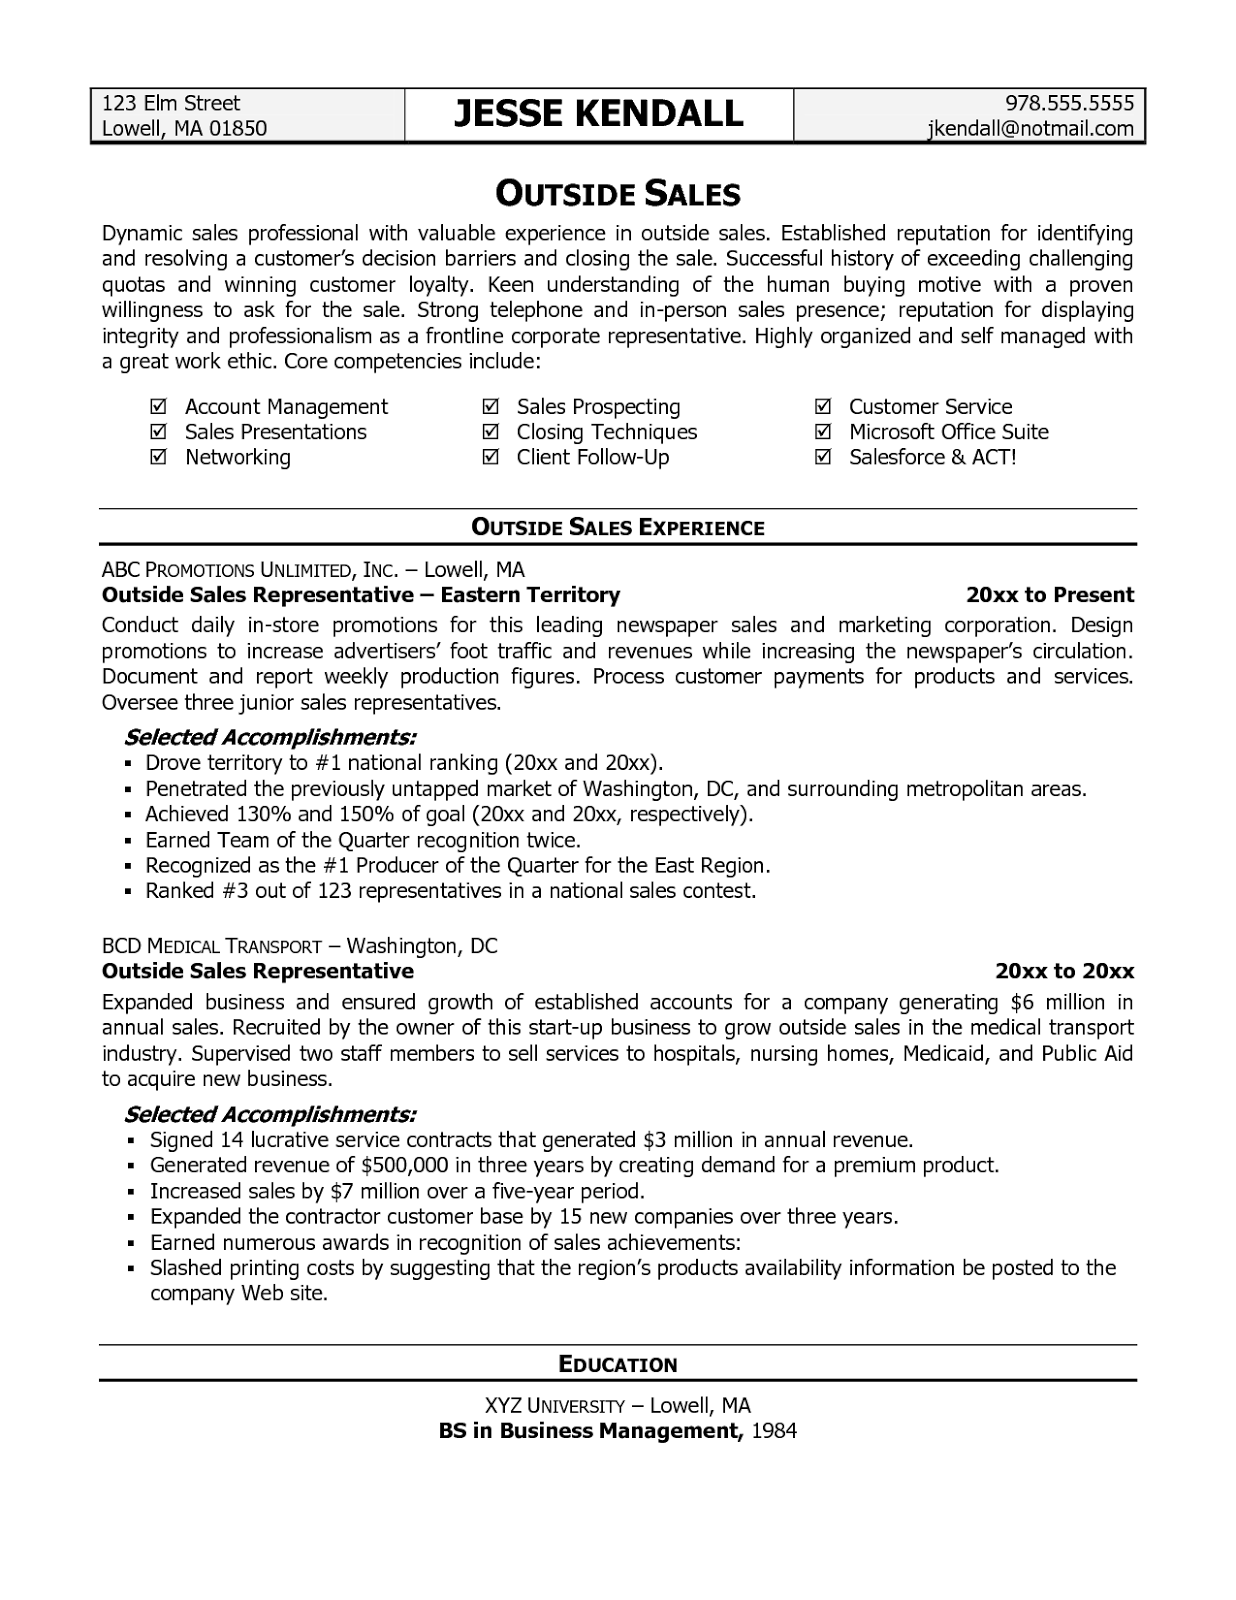 sample resume for sales manager in fmcg sales Dayjob